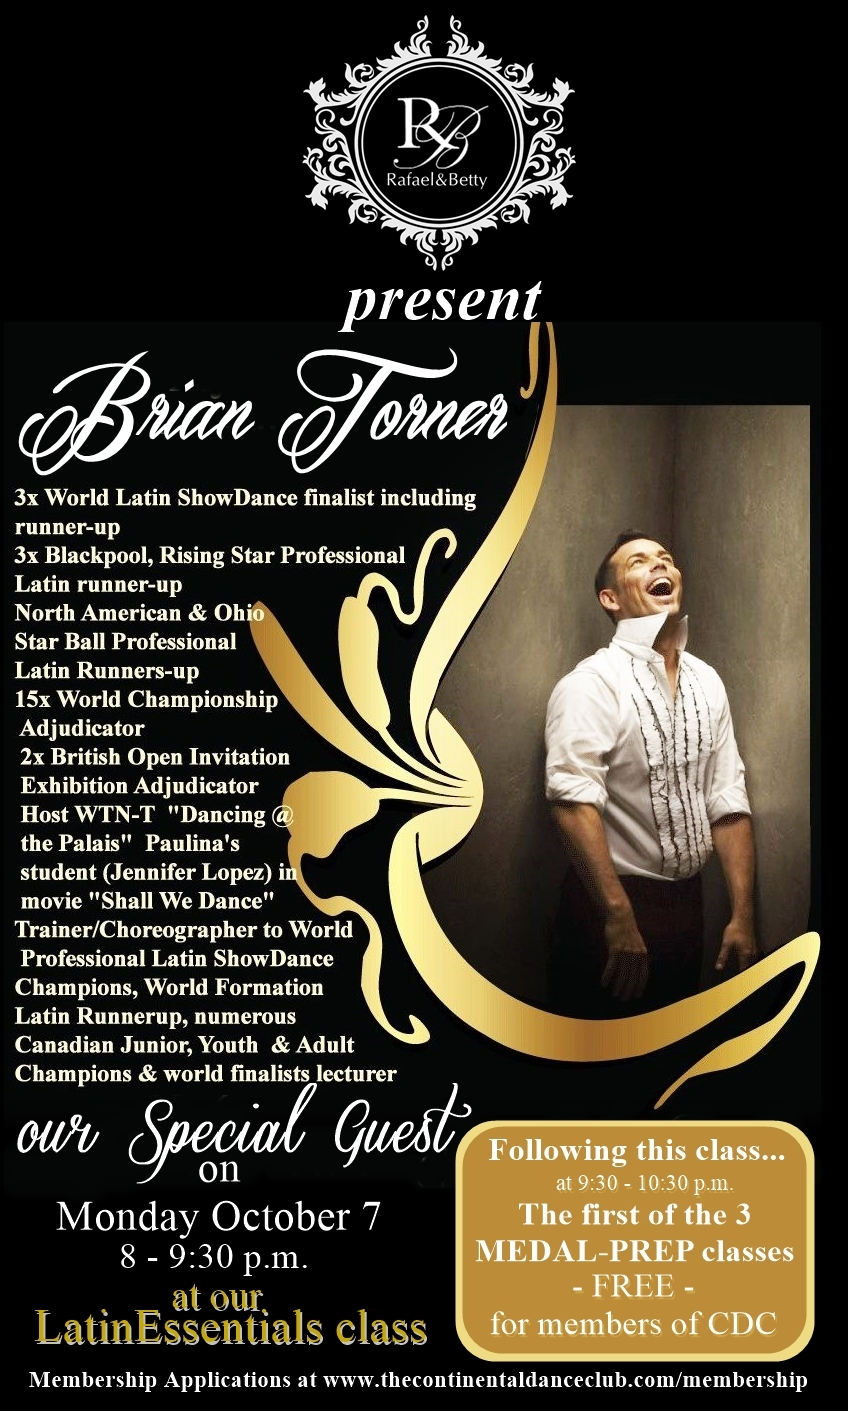 brian special guest!!